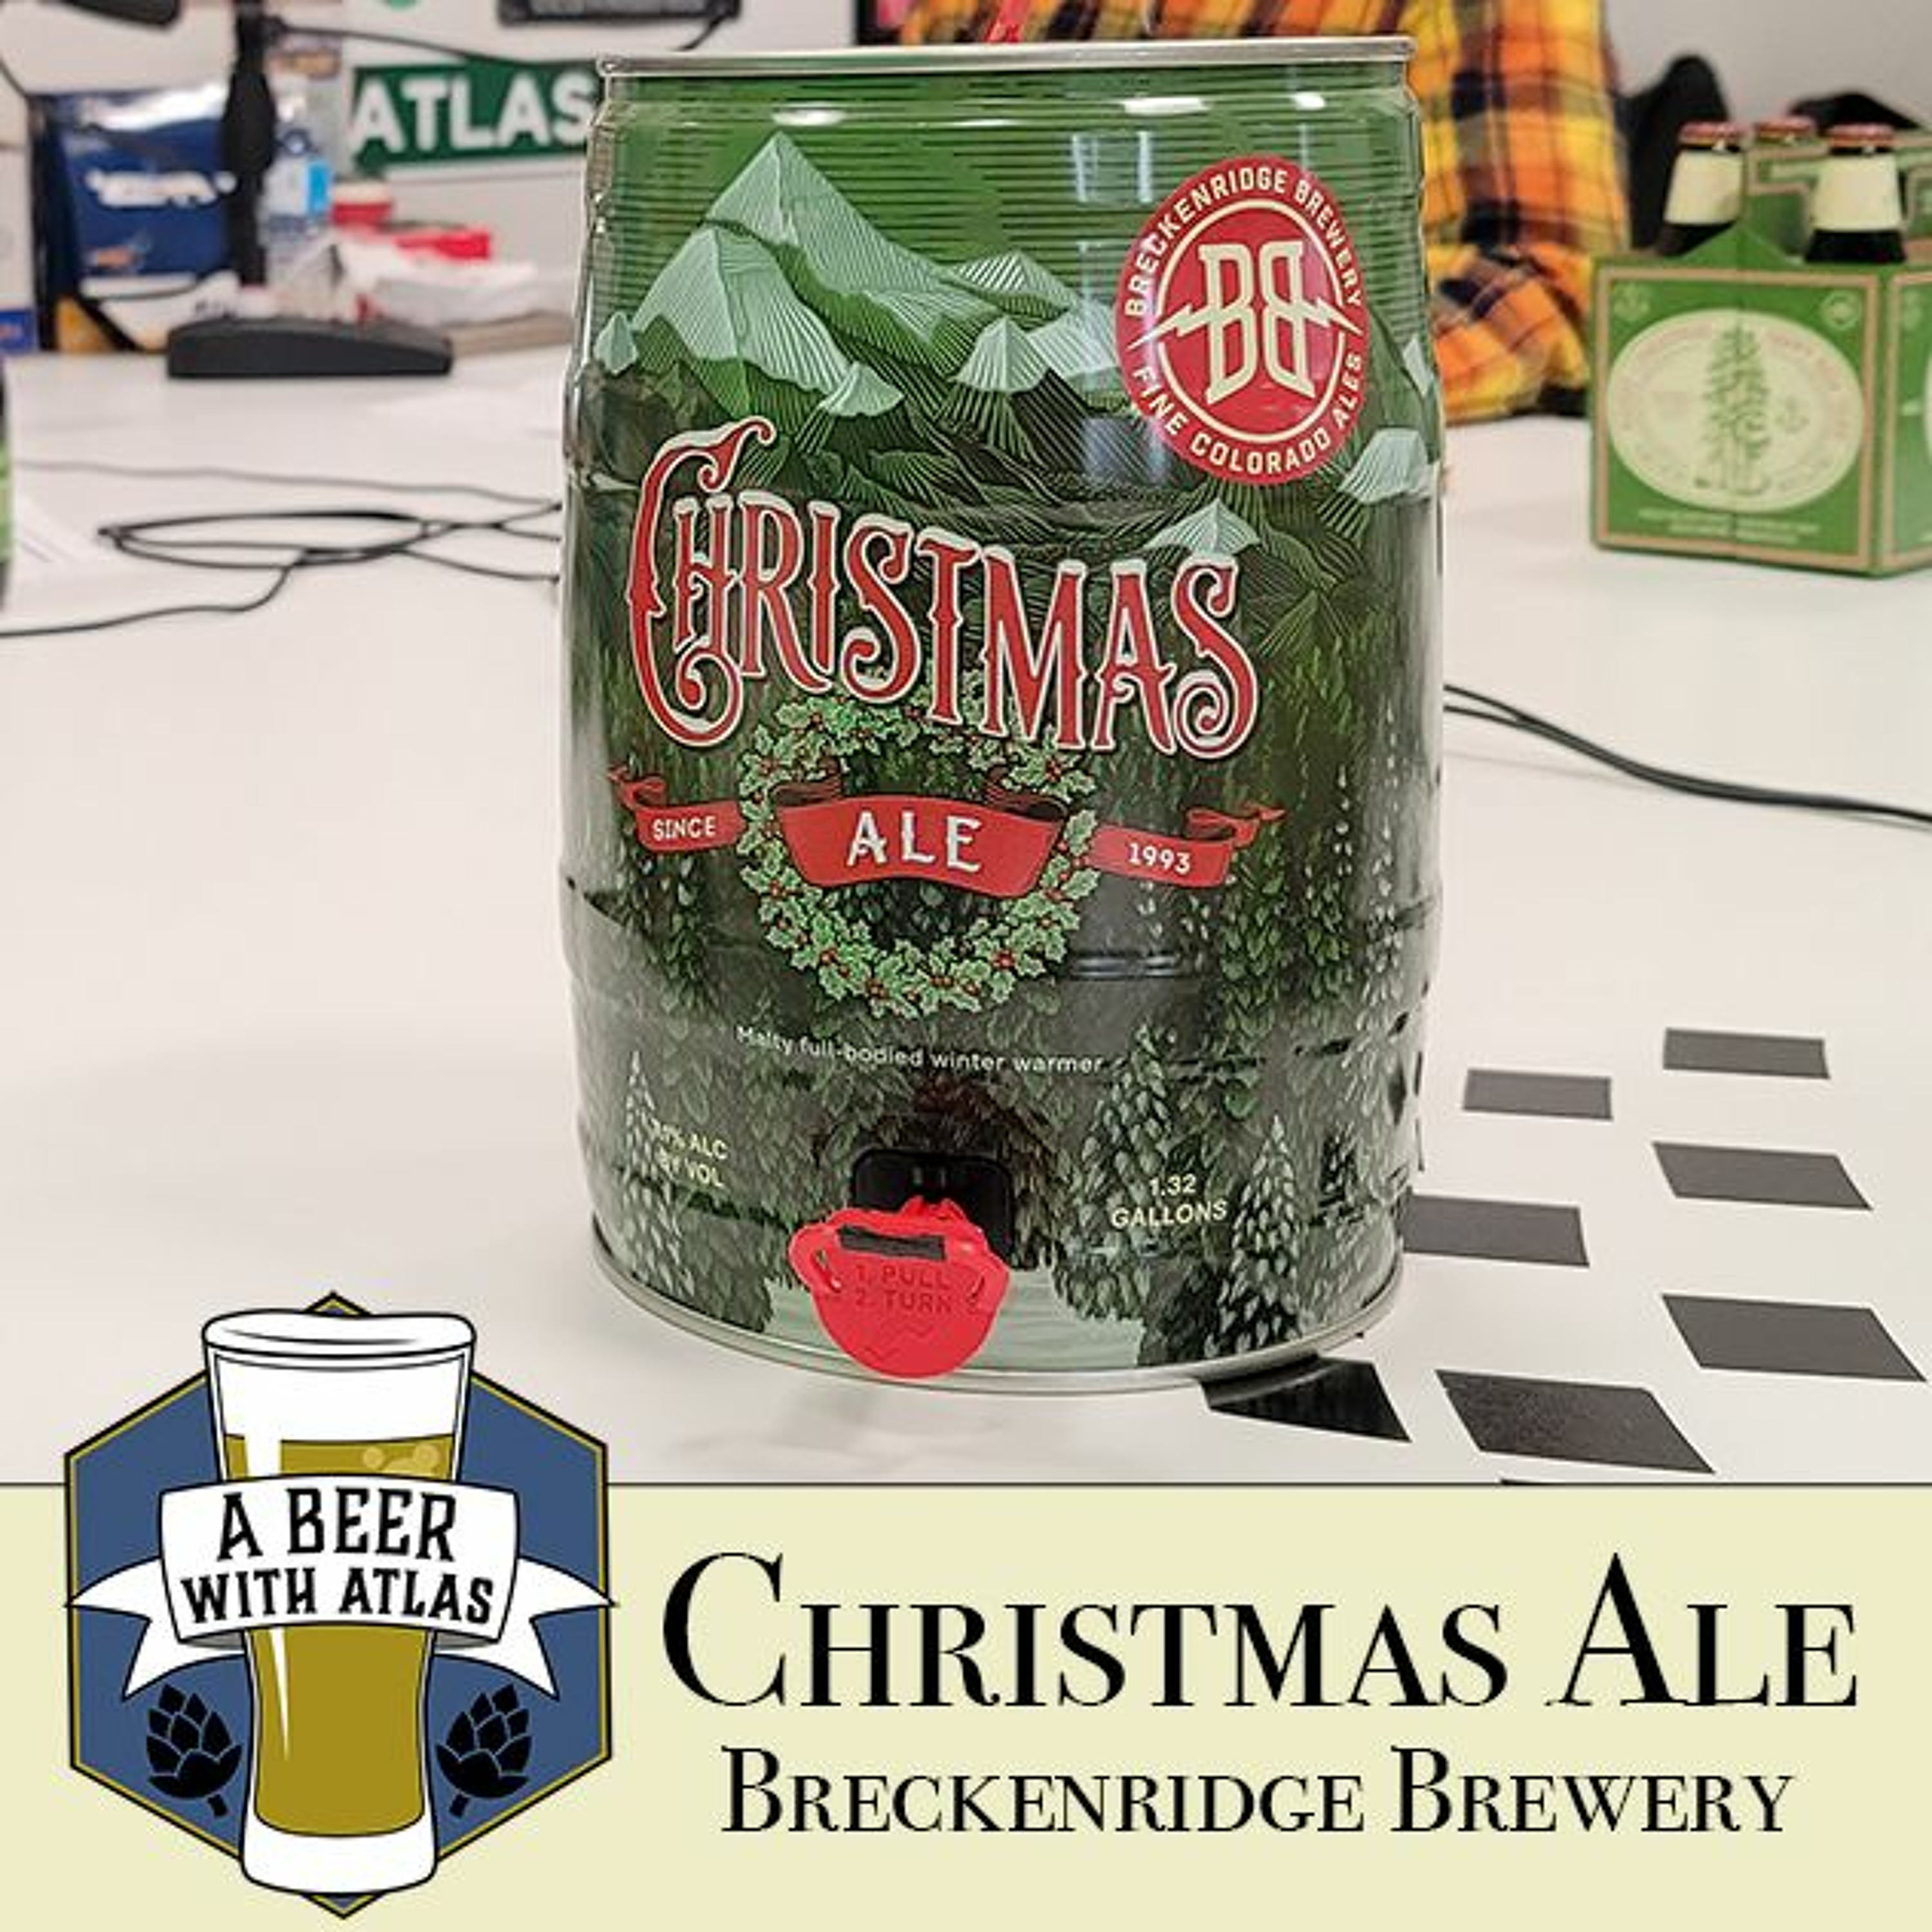 Christmas Ale Mini Keg from Breckenridge Brewery - Beer with Atlas 121 - travel nurse beer podcast